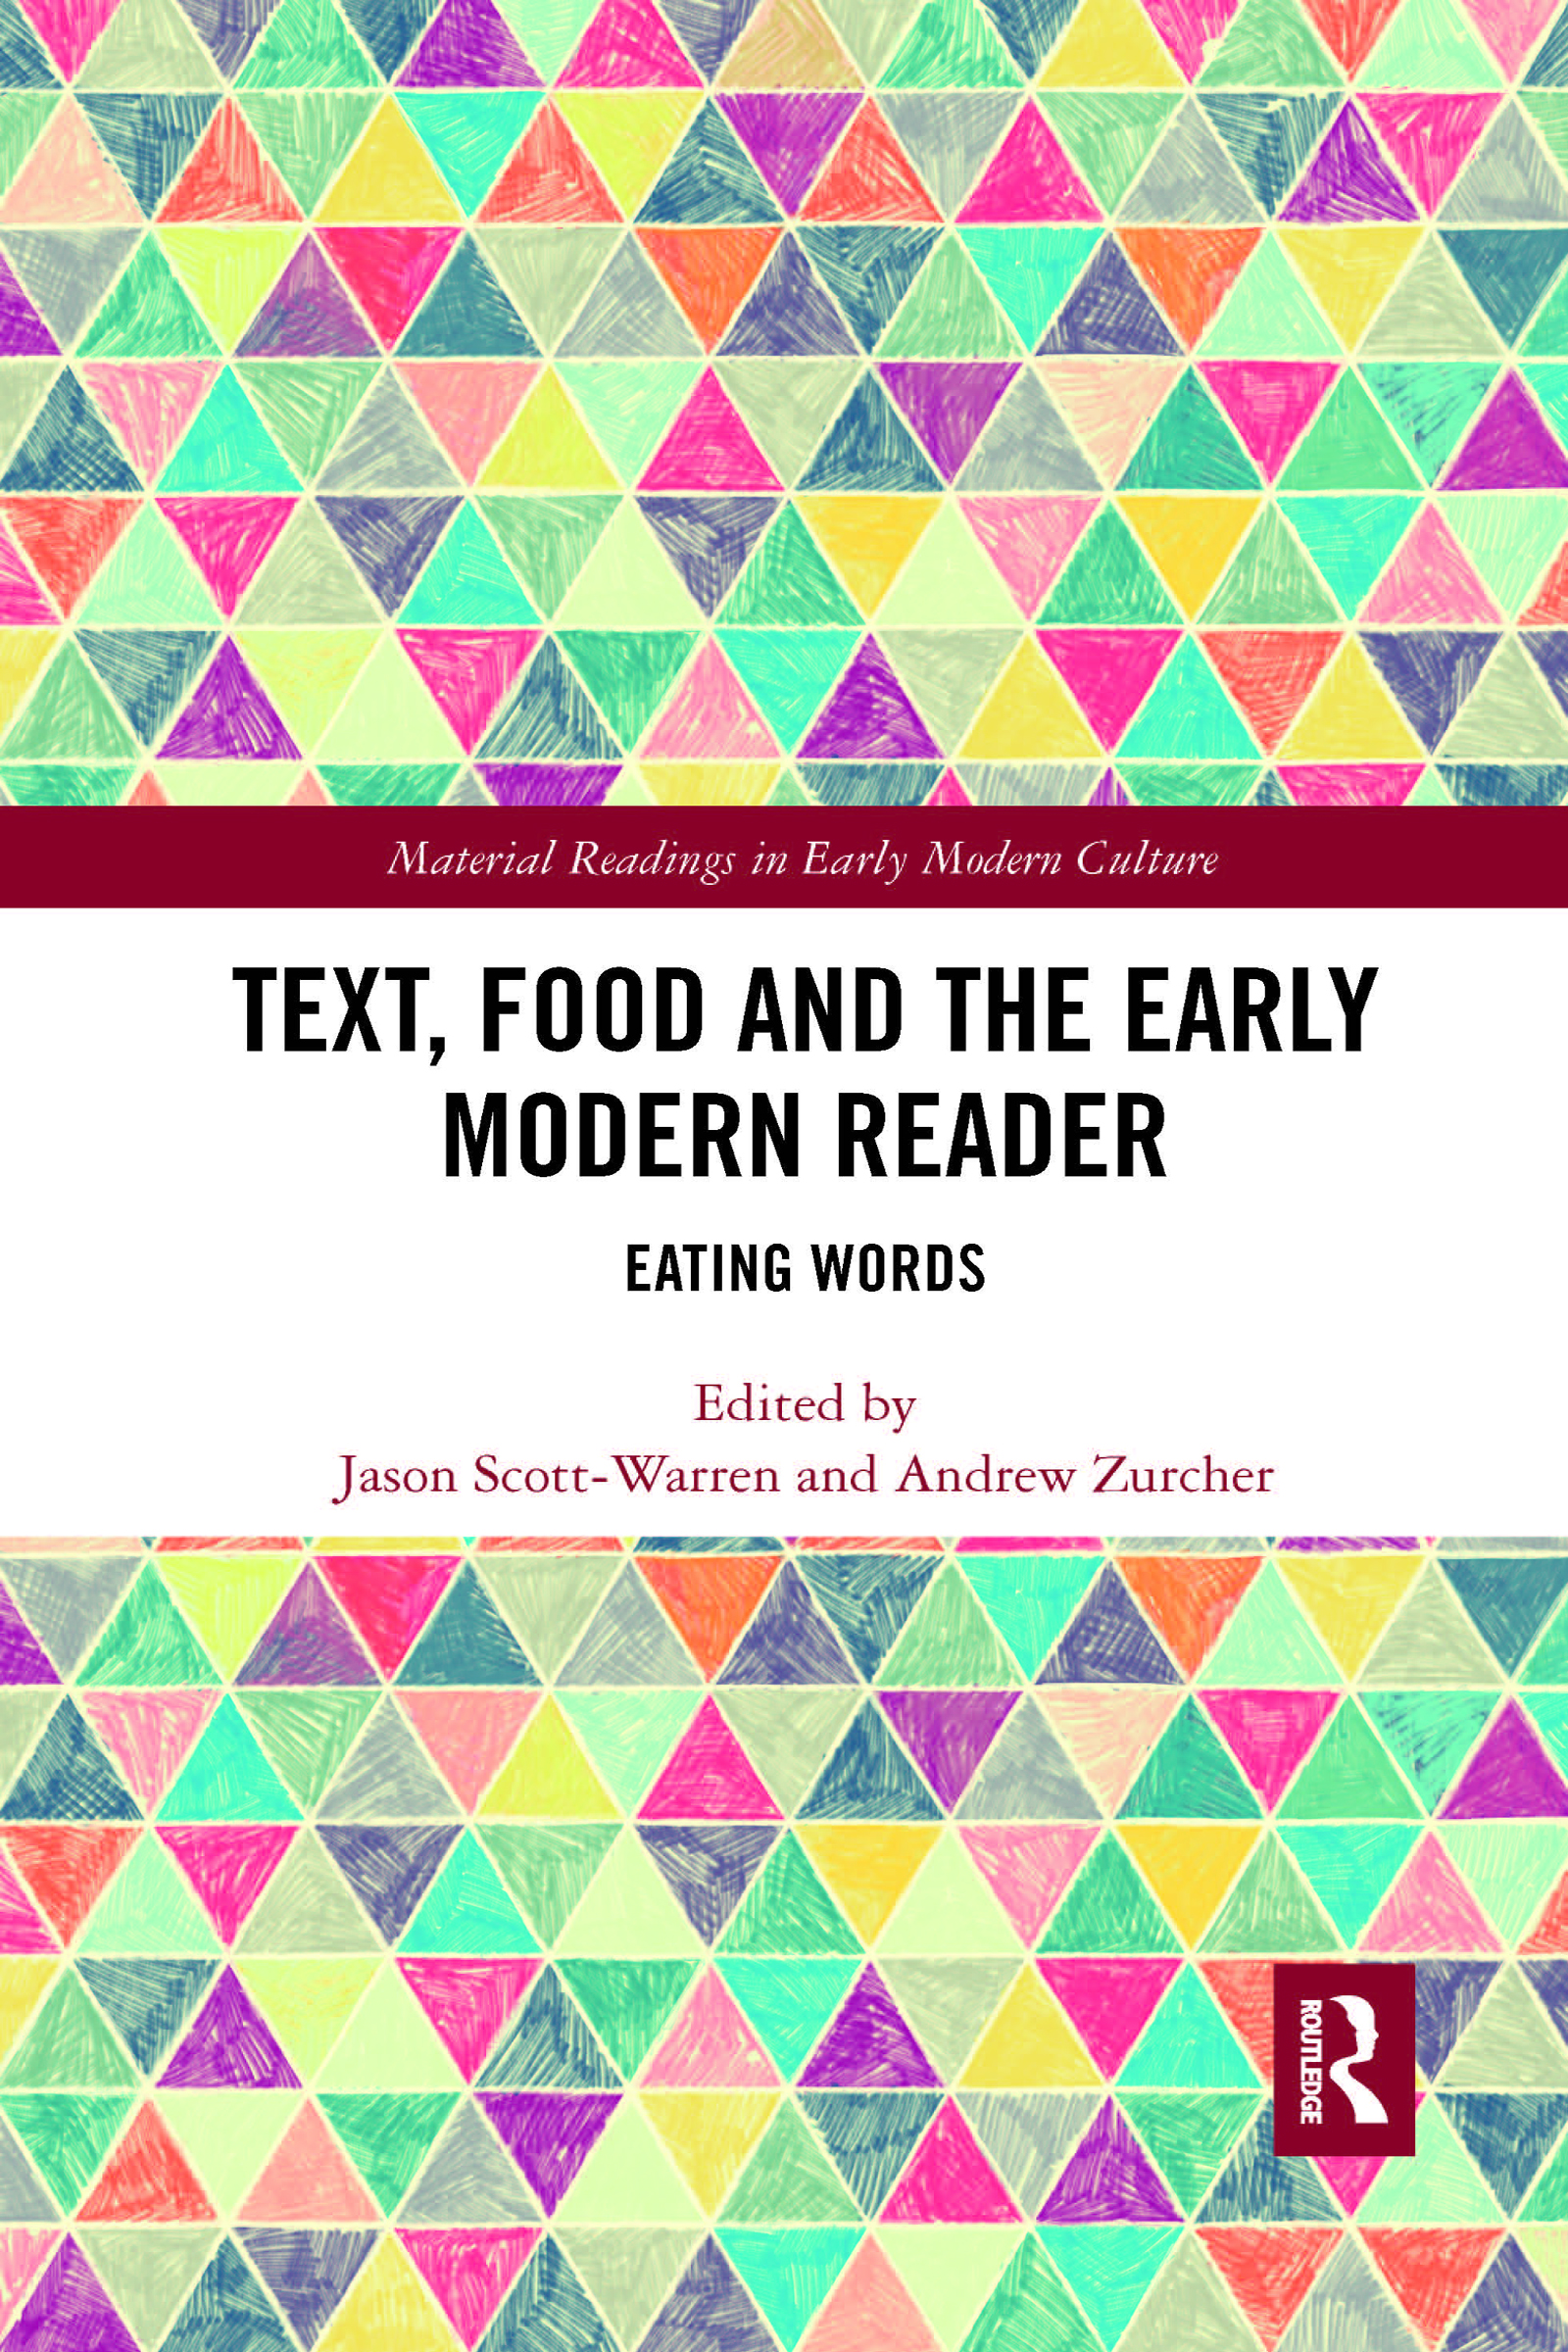 Text, Food and the Early Modern Reader